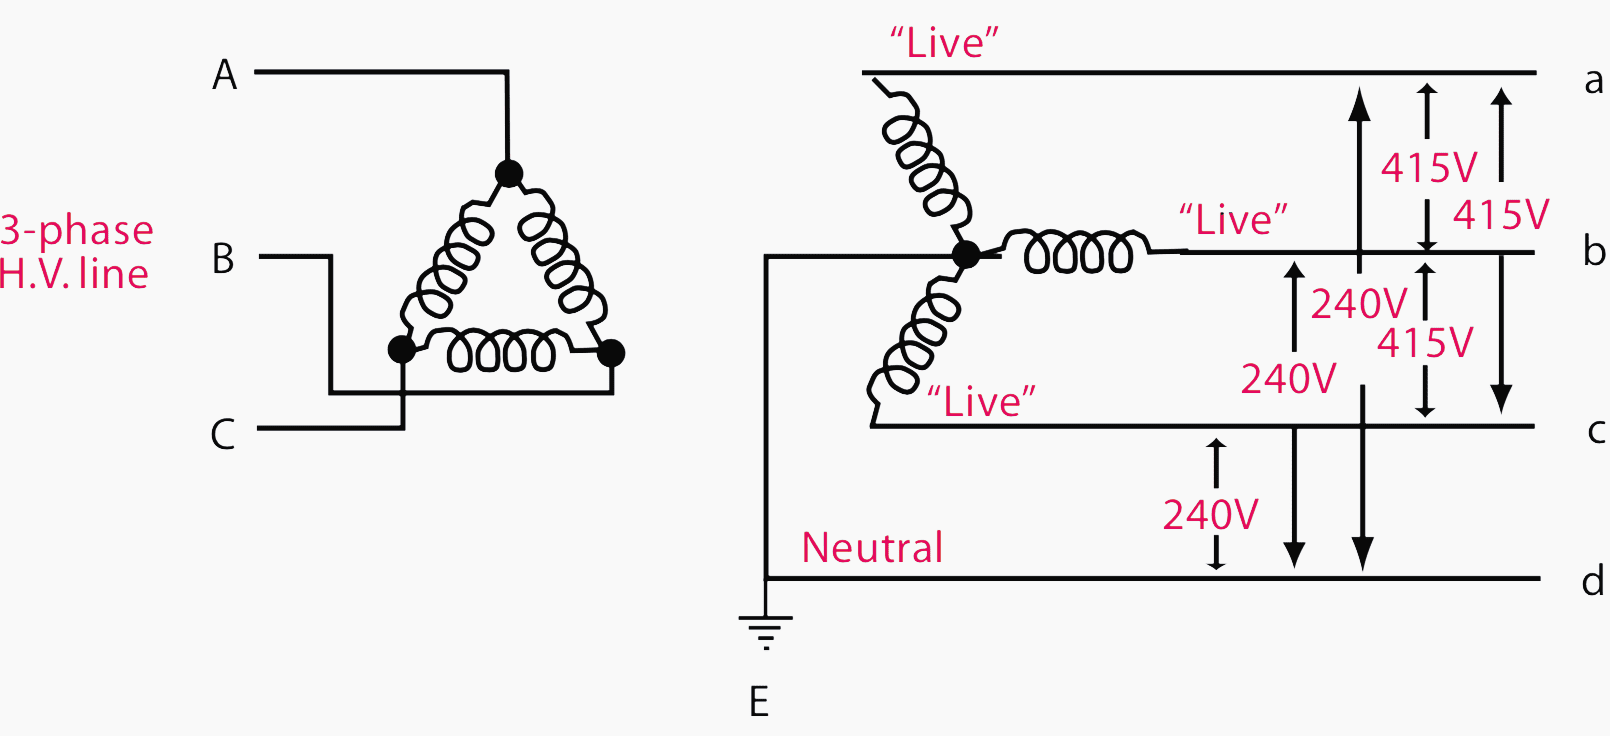 hight resolution of three phase system with earthed neutral